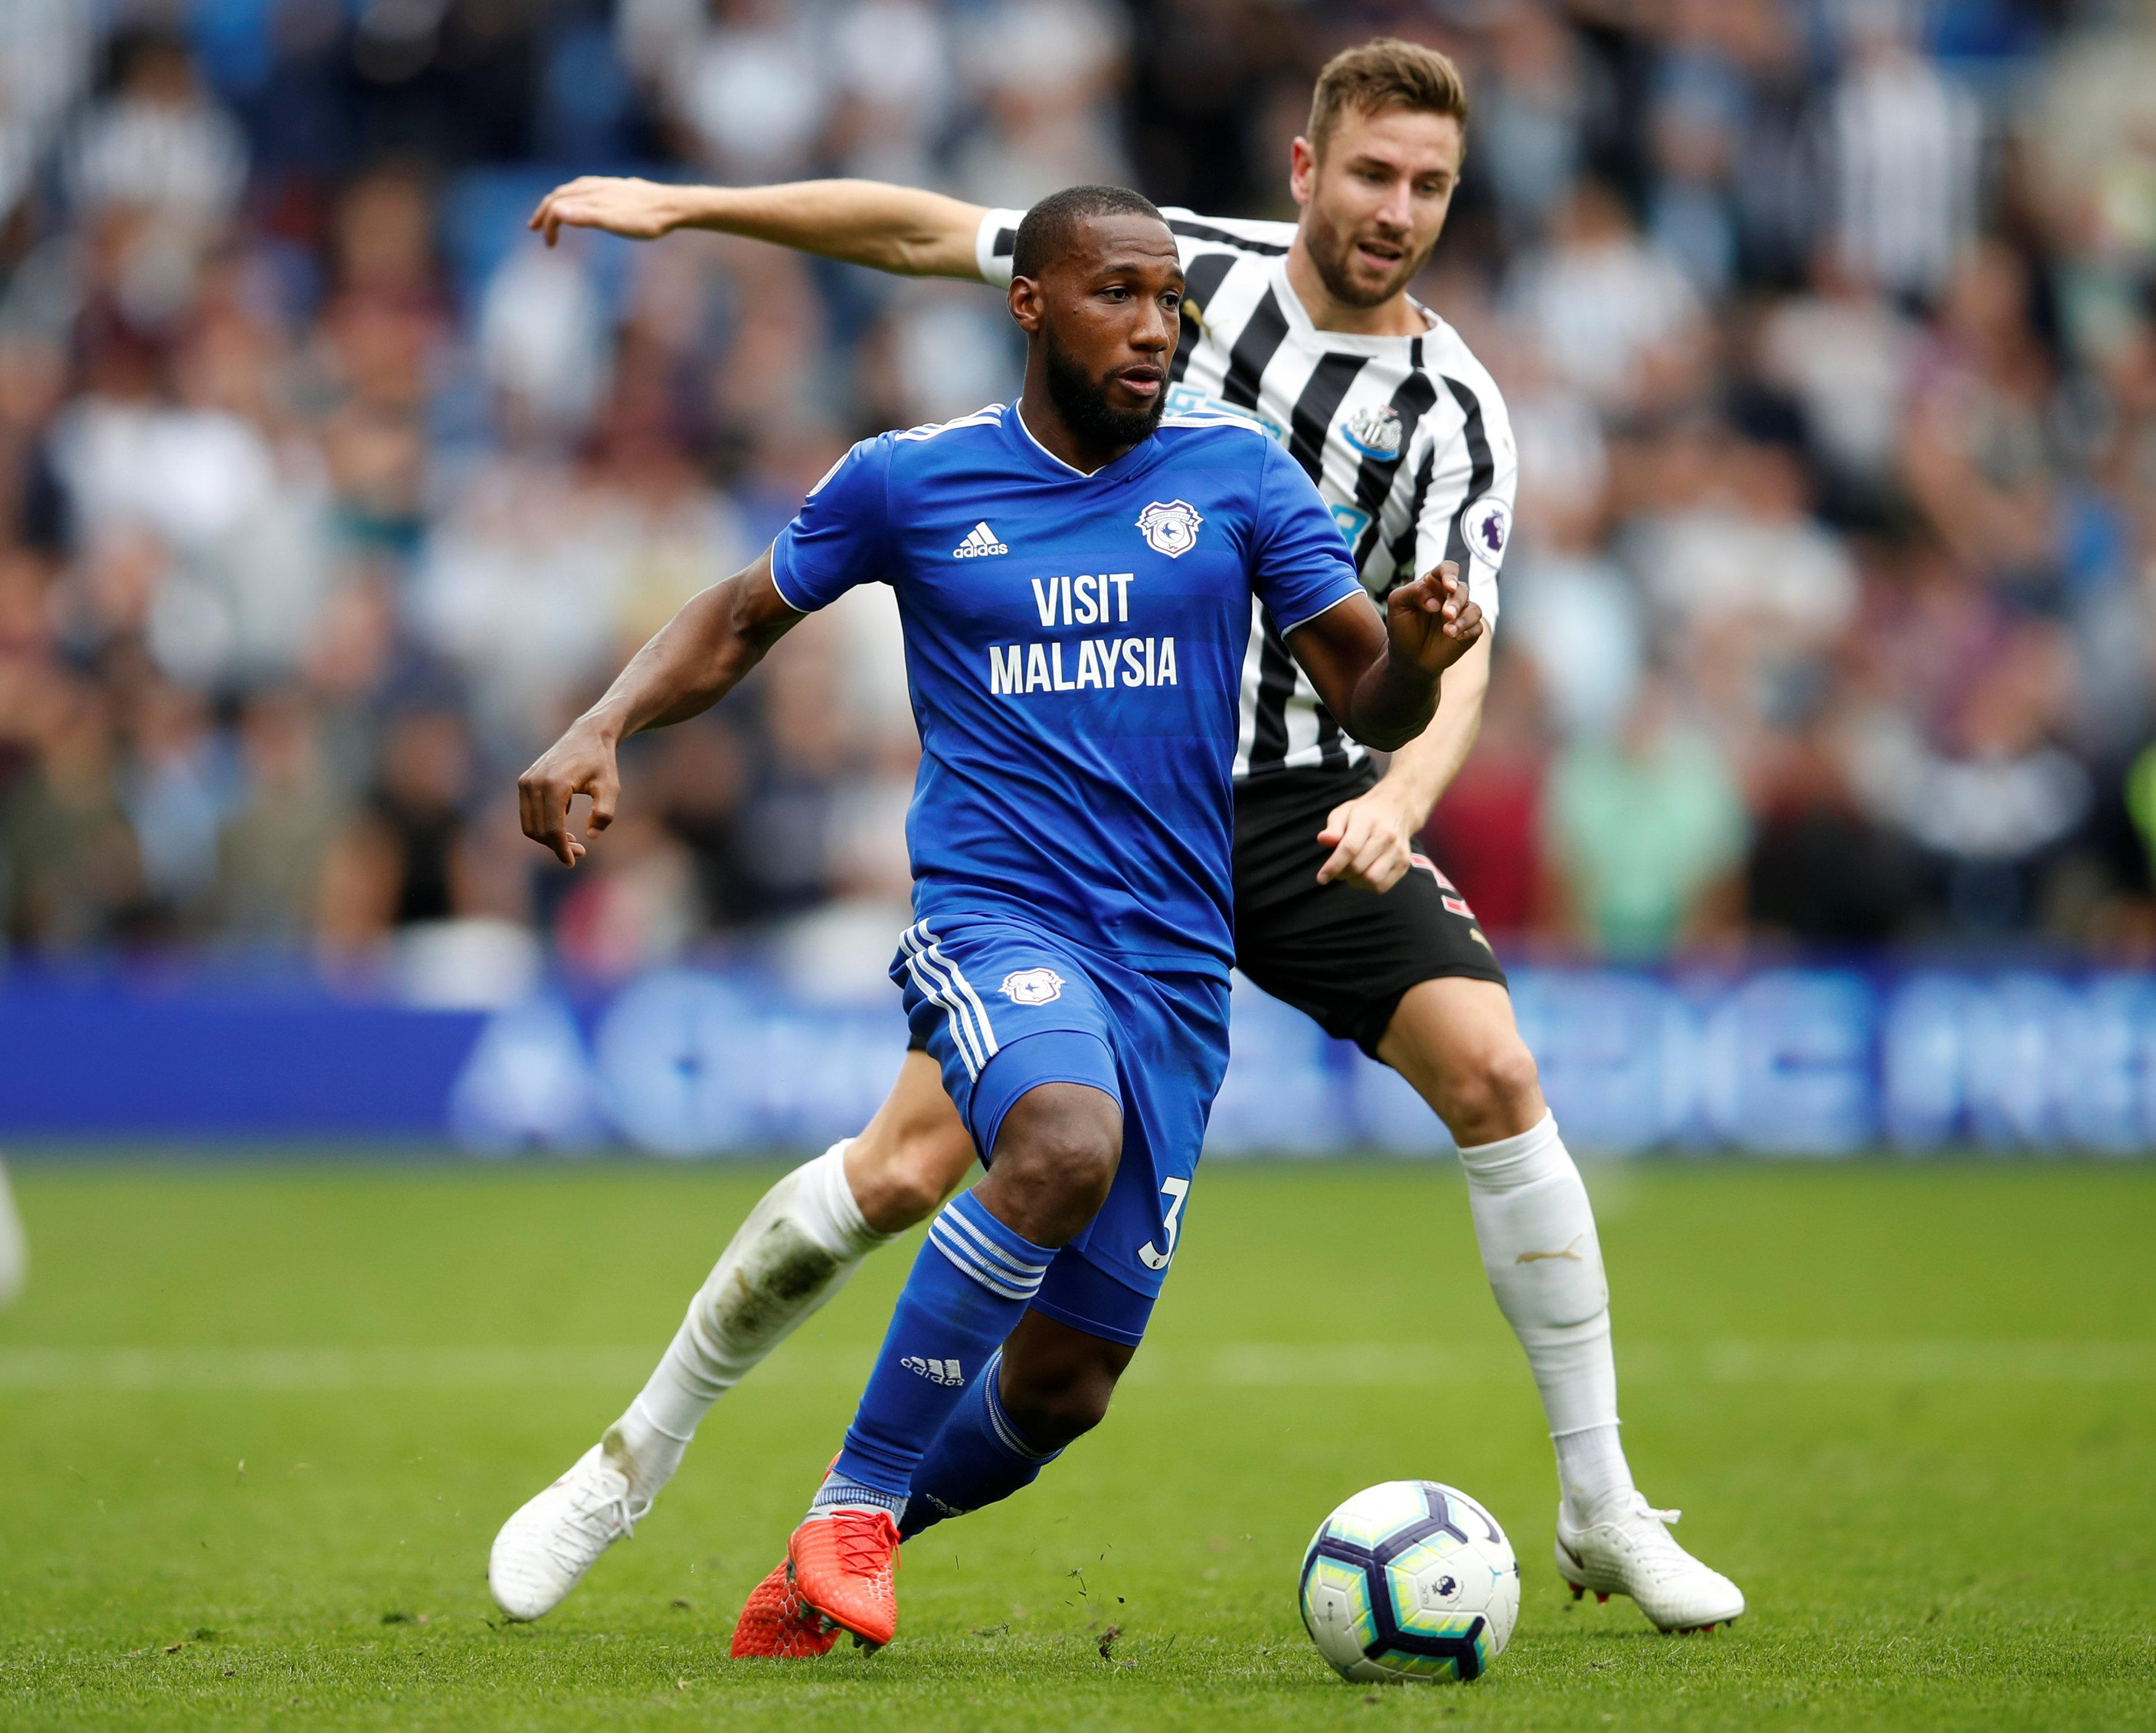 Junior Hoilett proved to be a handful for his opposing full backs during the game